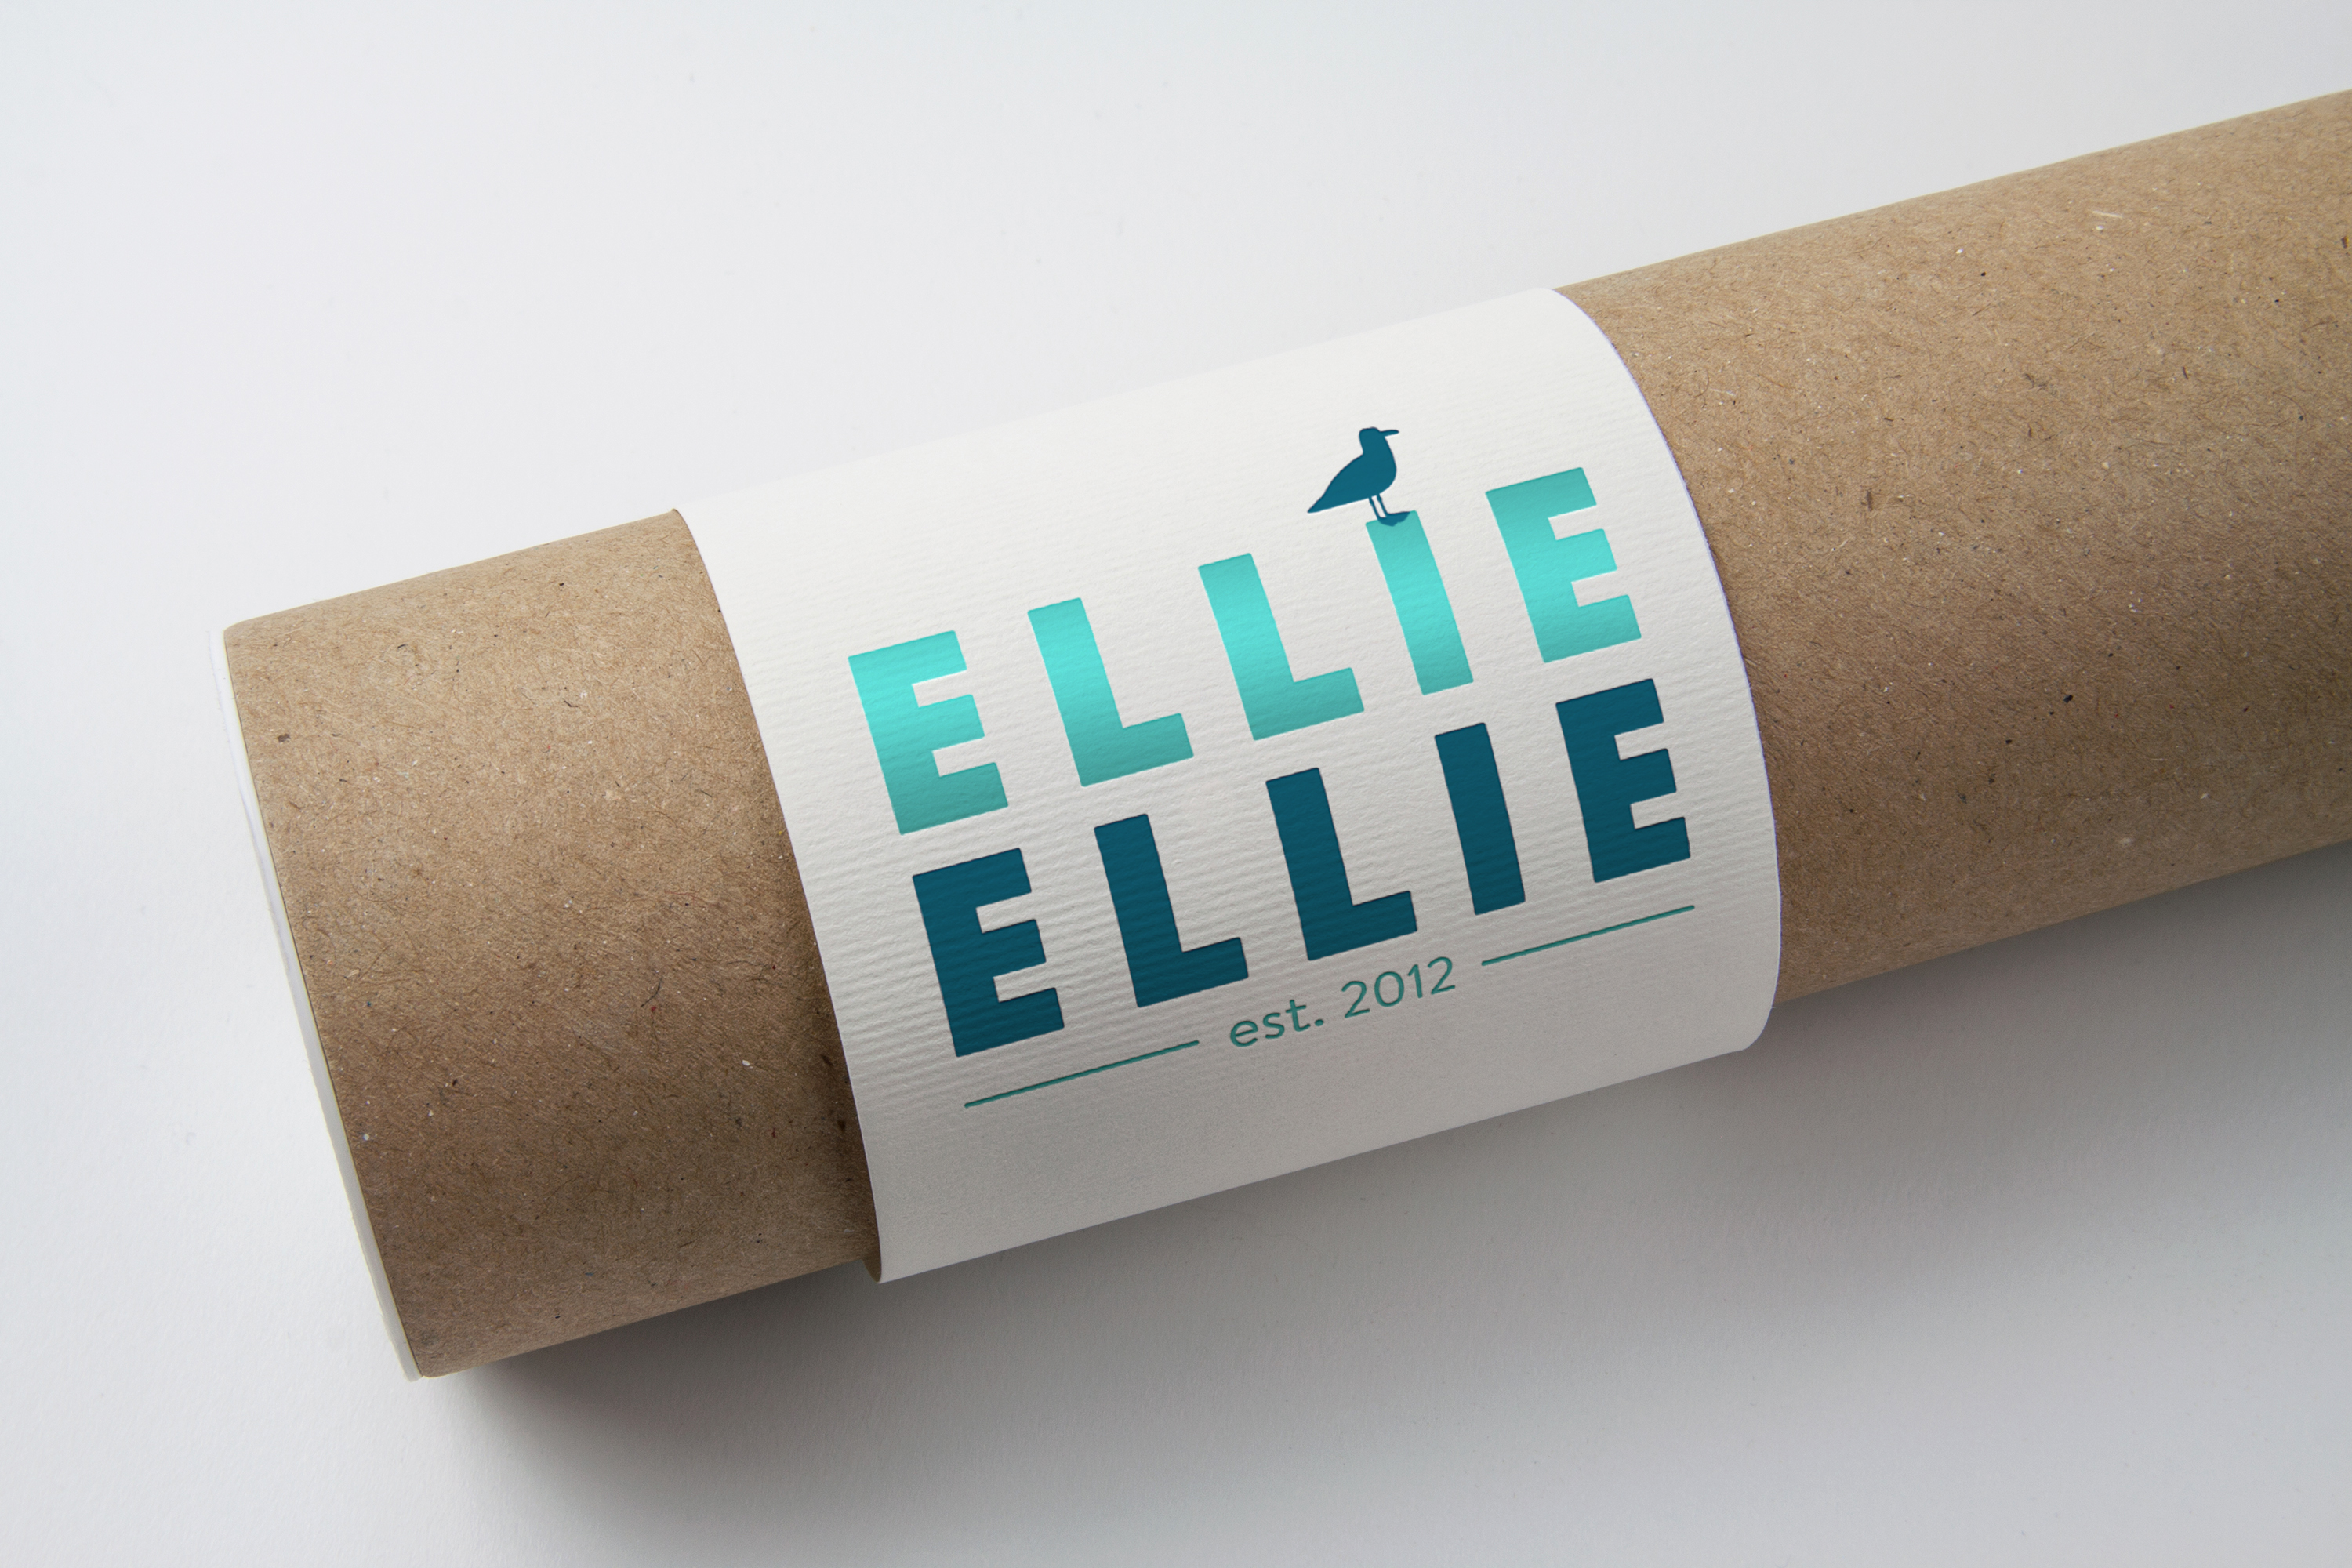 Ellie Ellie label design work